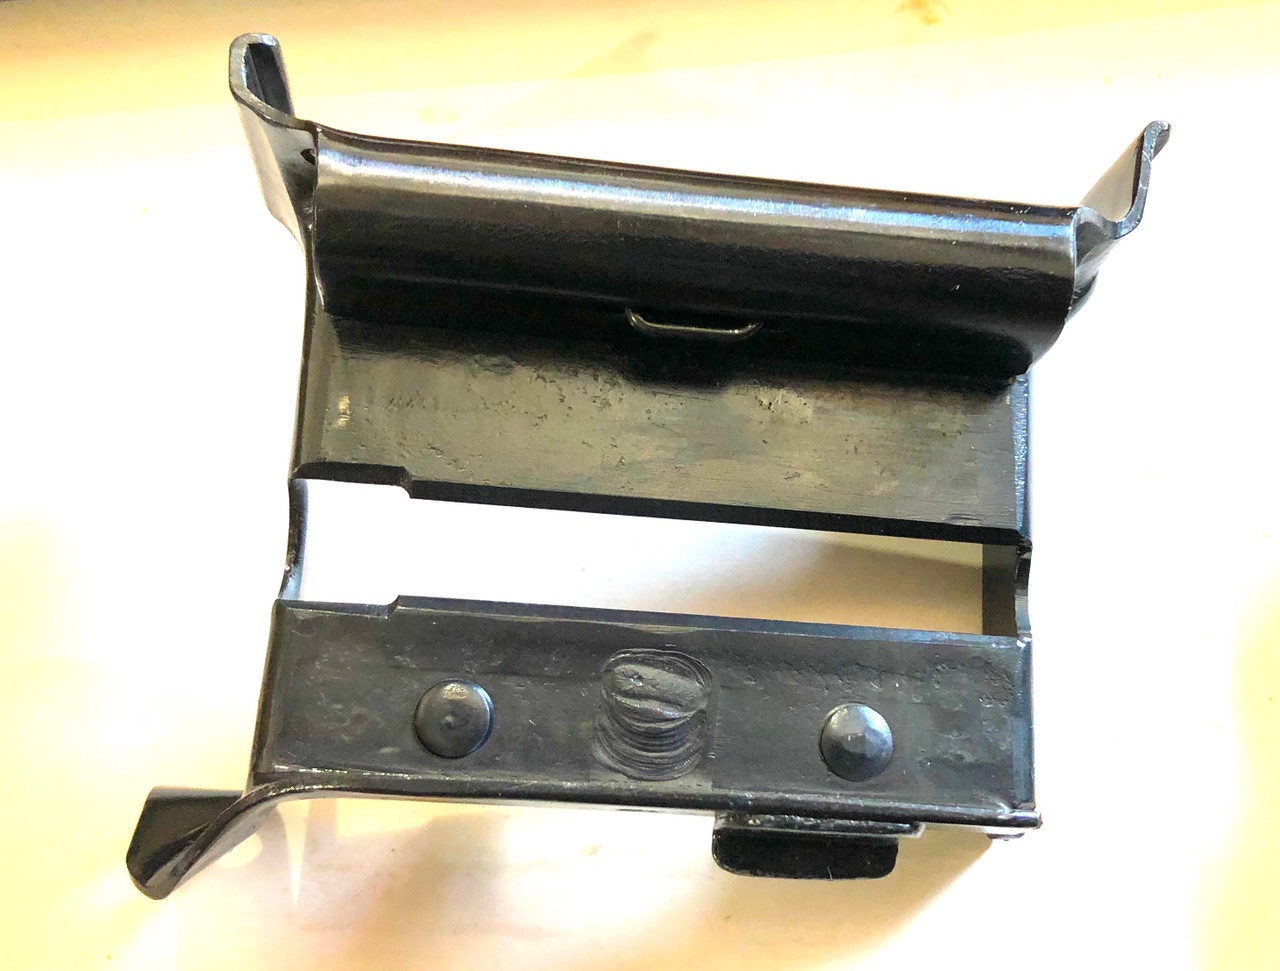 MG34 Parts Kit 11A - SHIPS FREE in lower 48